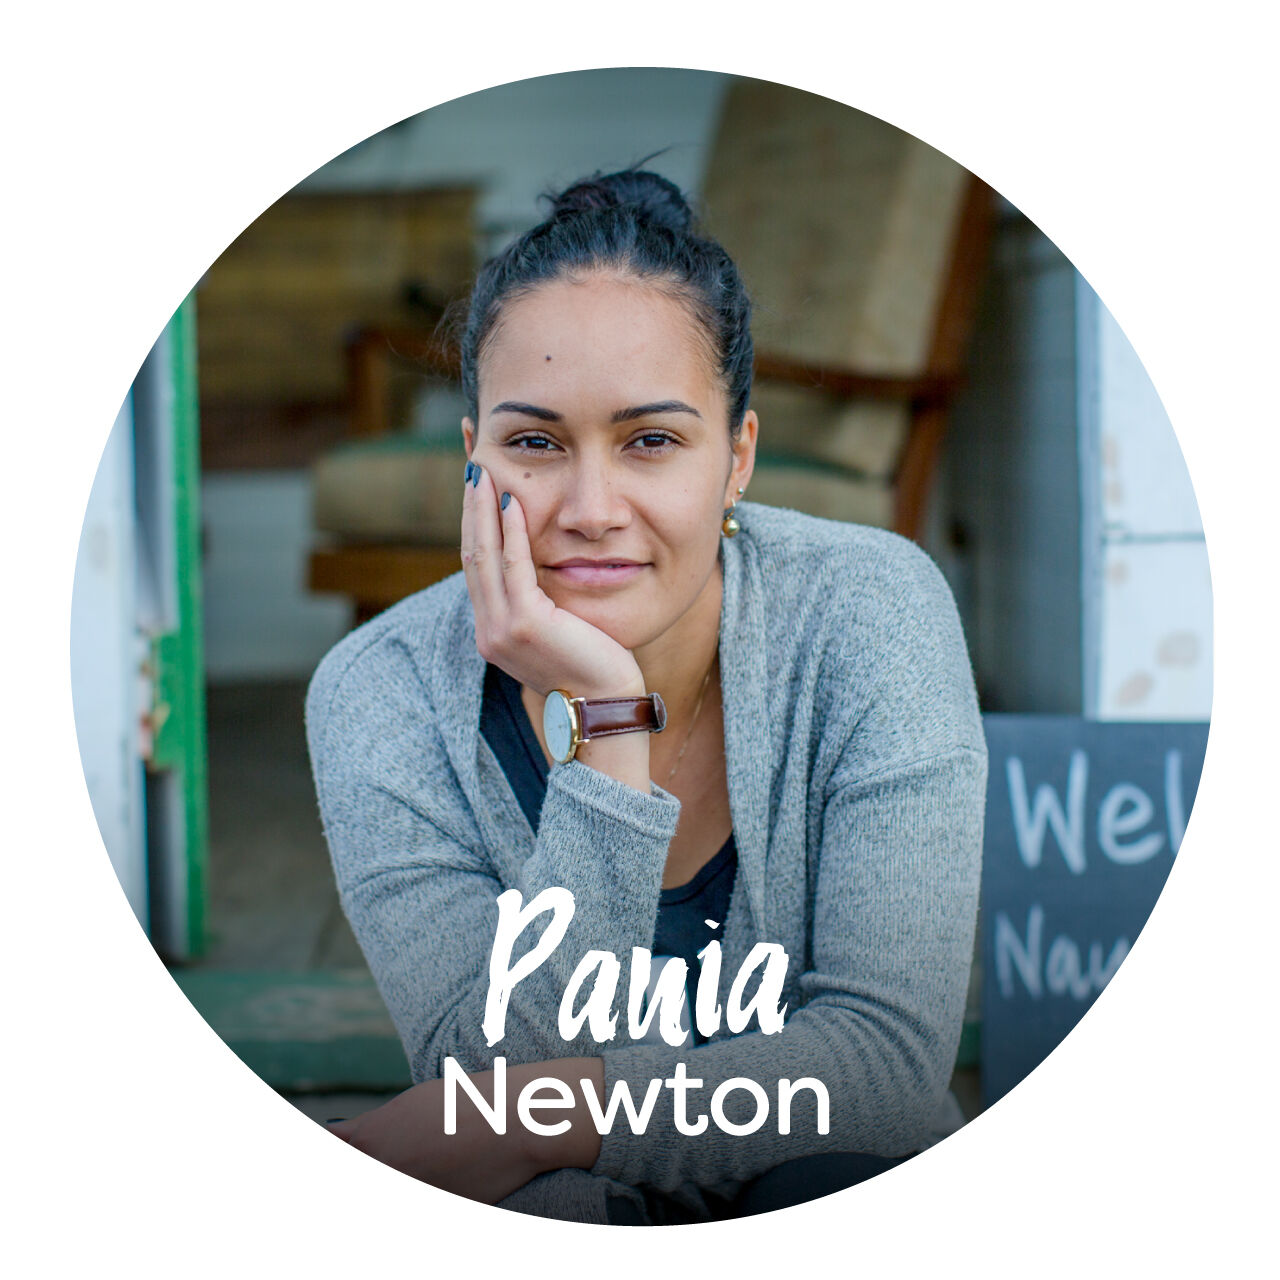 A picture of Pania Newton